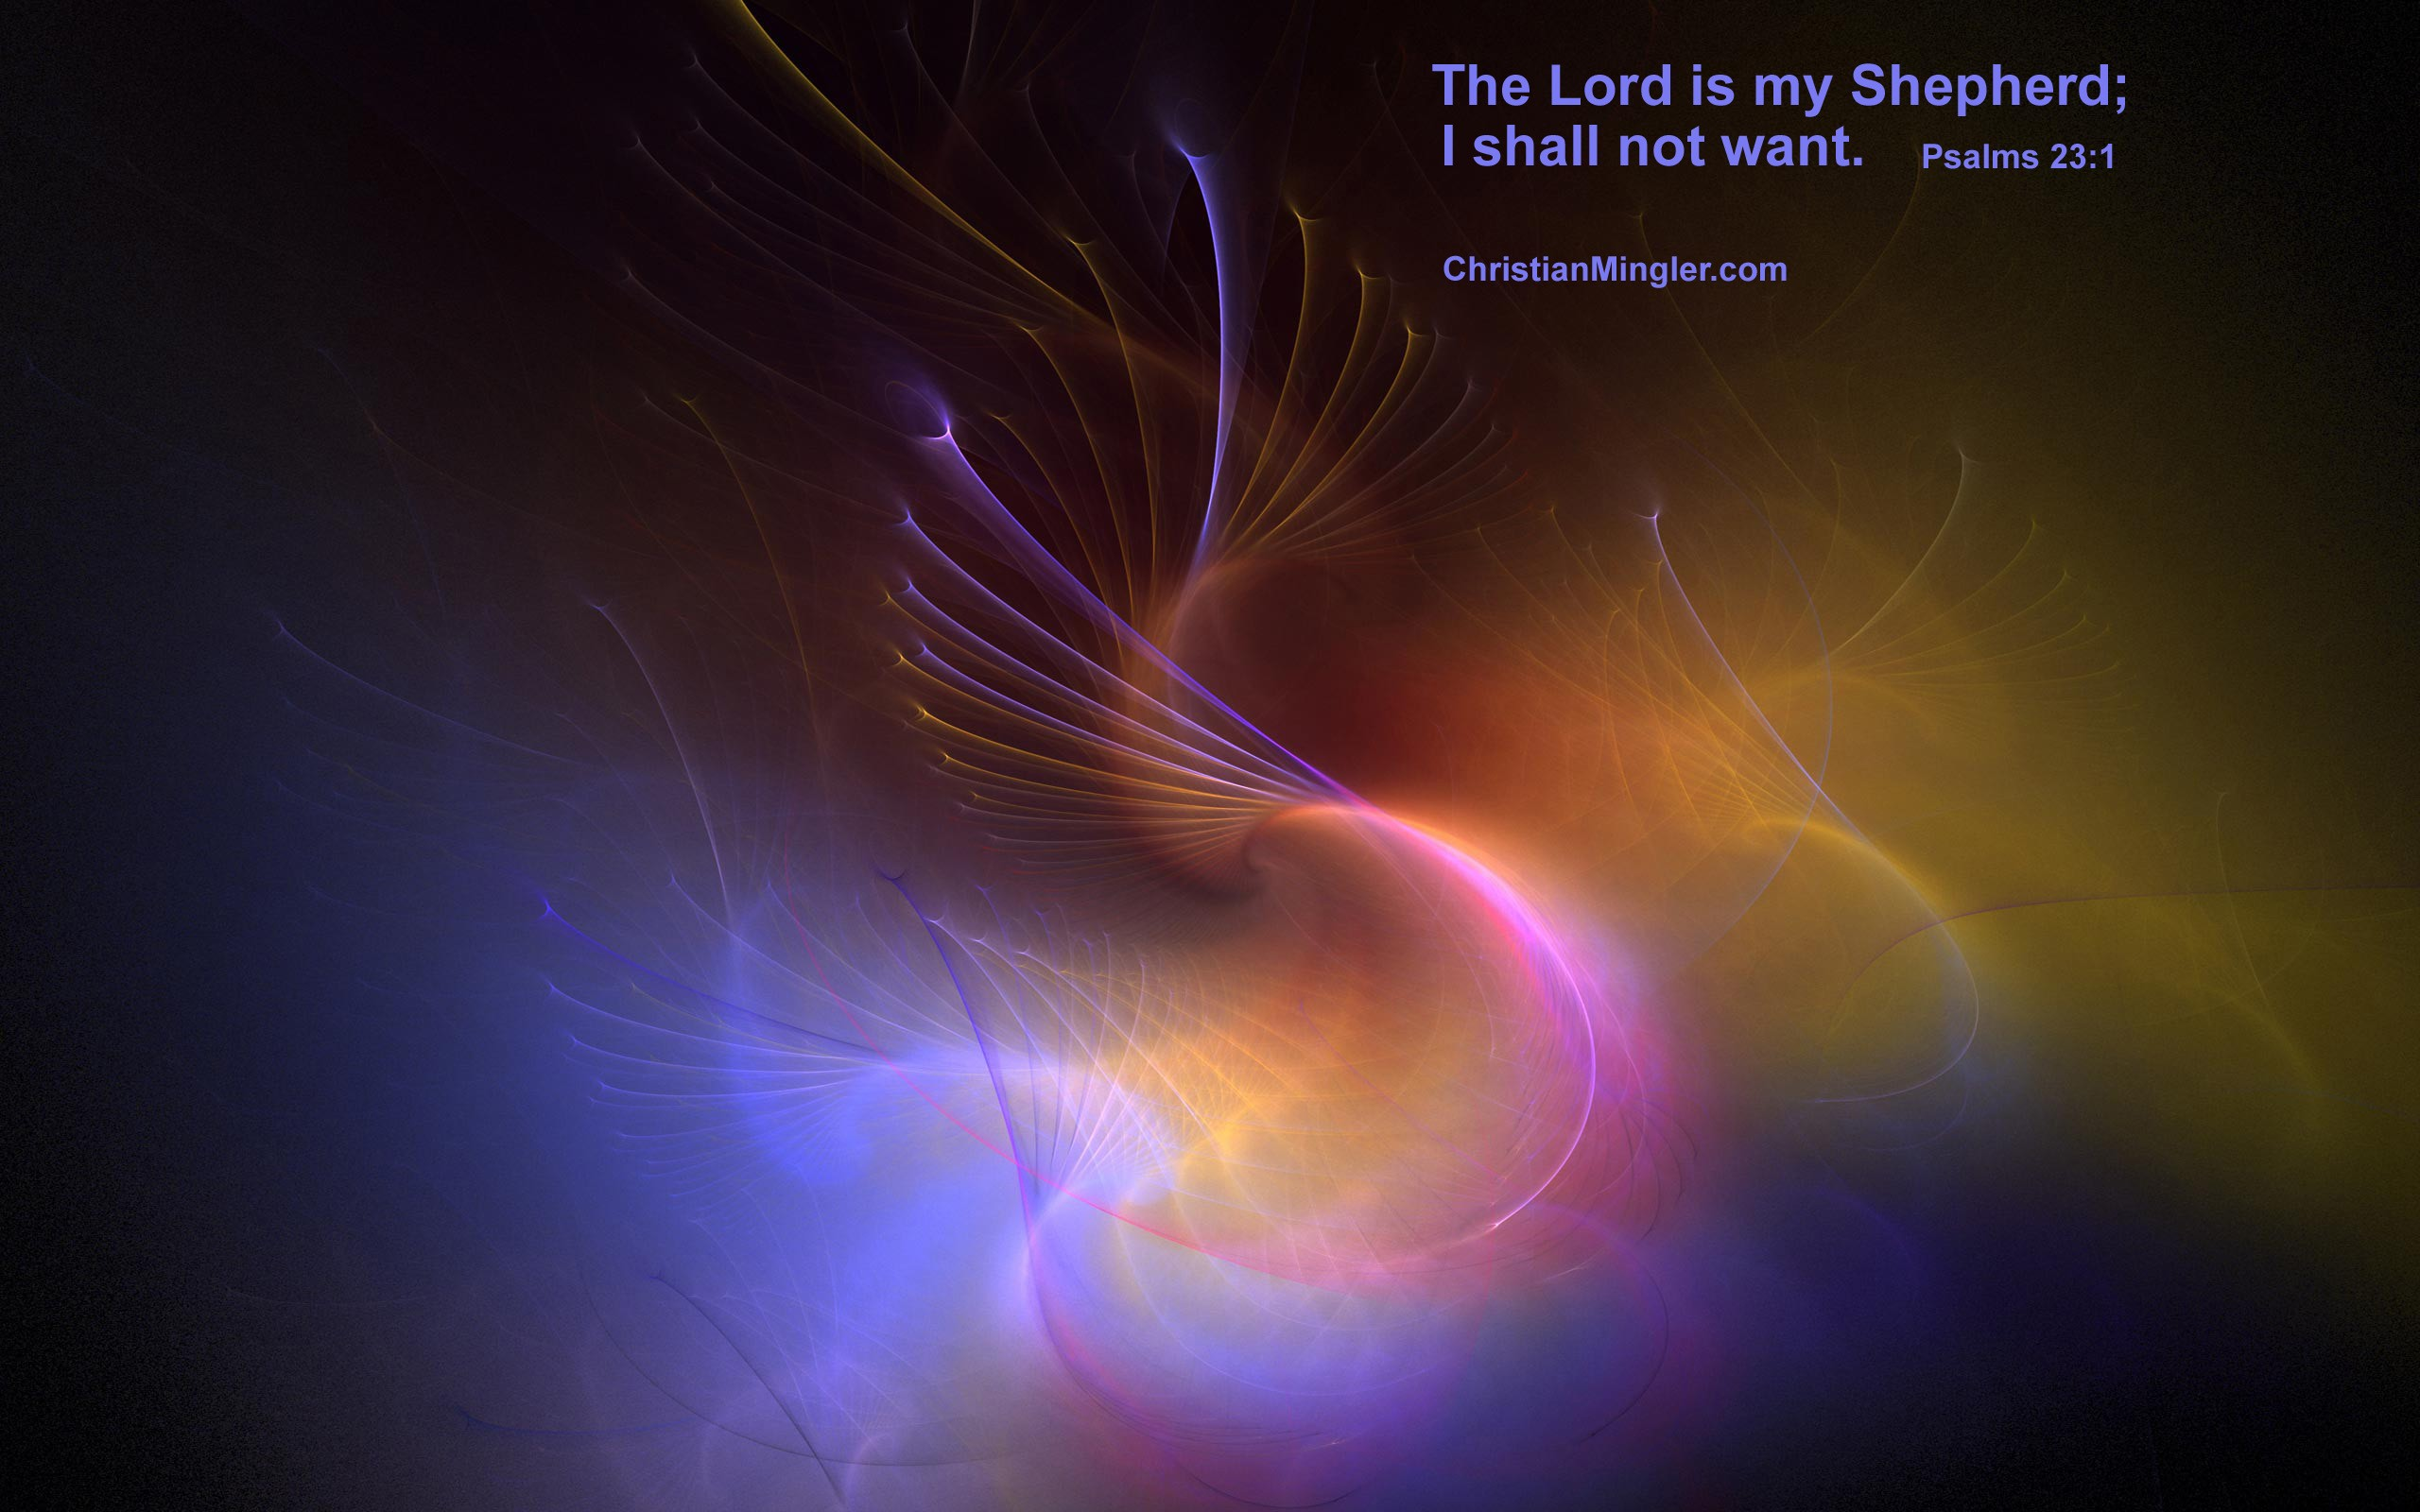 51 christian backgrounds download free high resolution wallpapers for desktop mobile - Full hd bible wallpapers ...